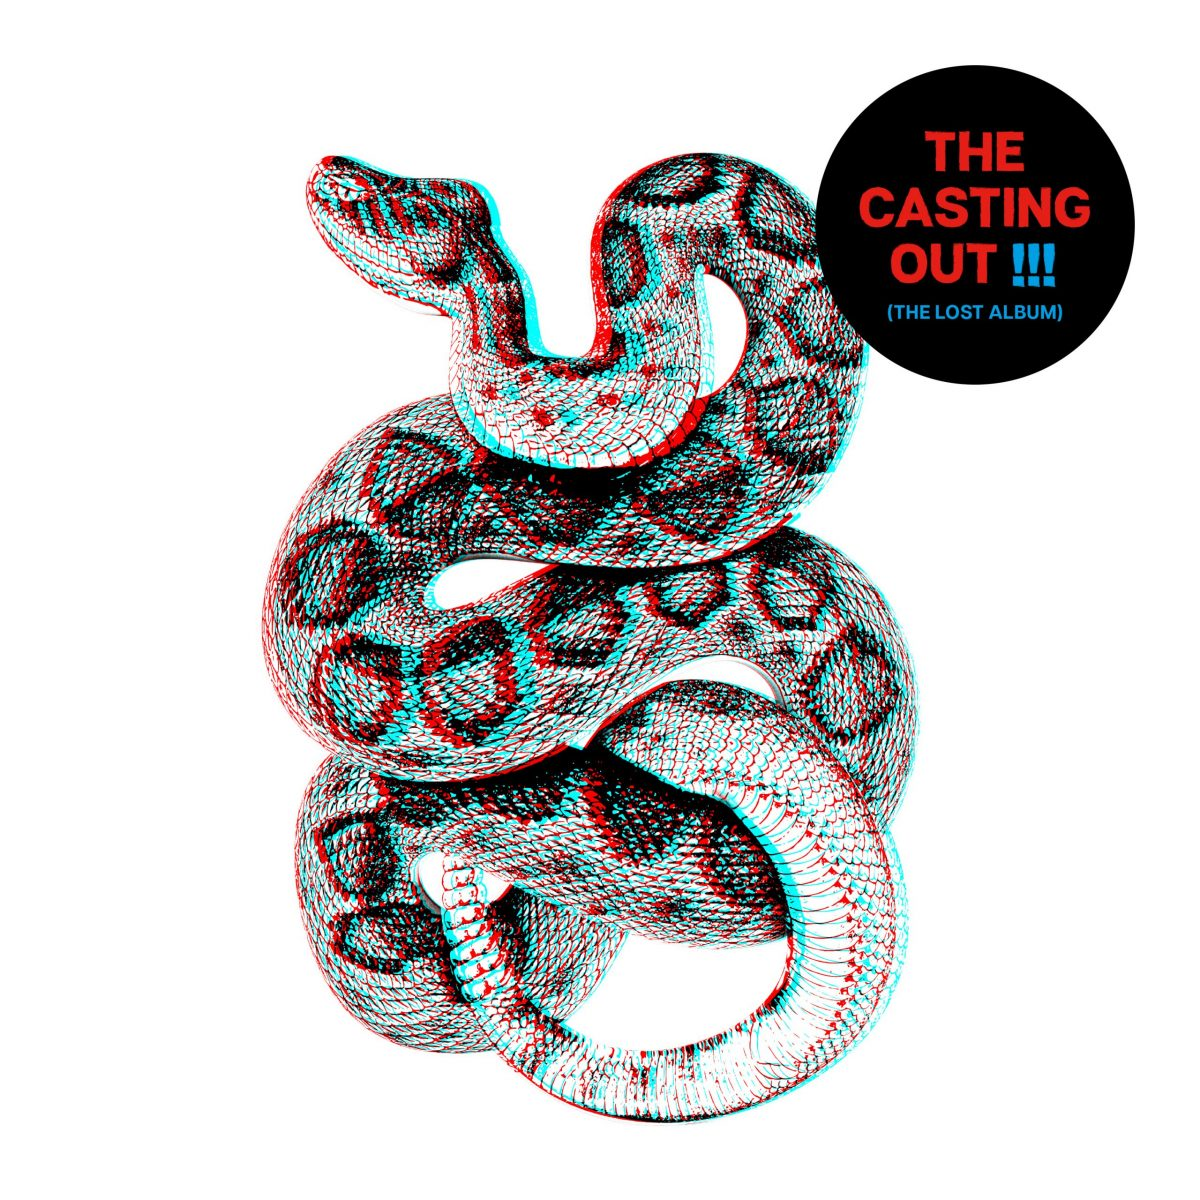 the-casting-out-the-lost-albumdropcard-ep-eine-fast-verschollene-perle-album-review